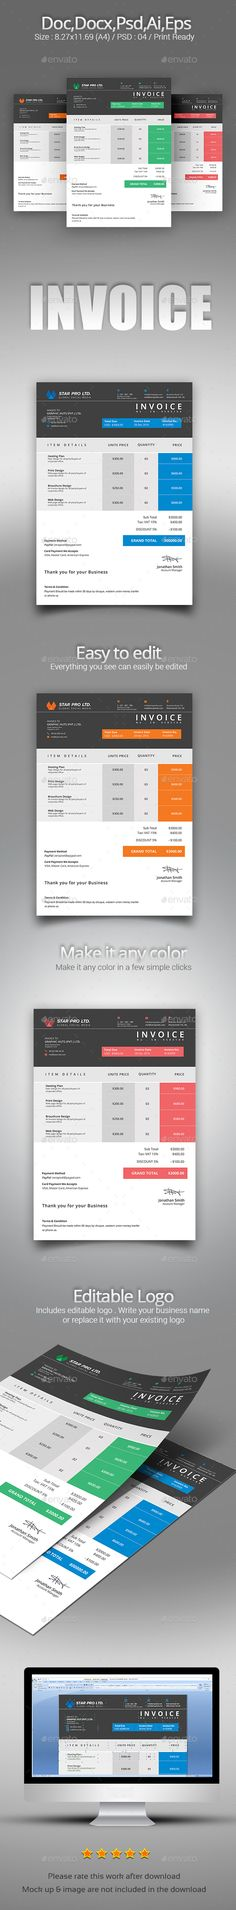 landscaping invoice template 1 landscaping invoice templates